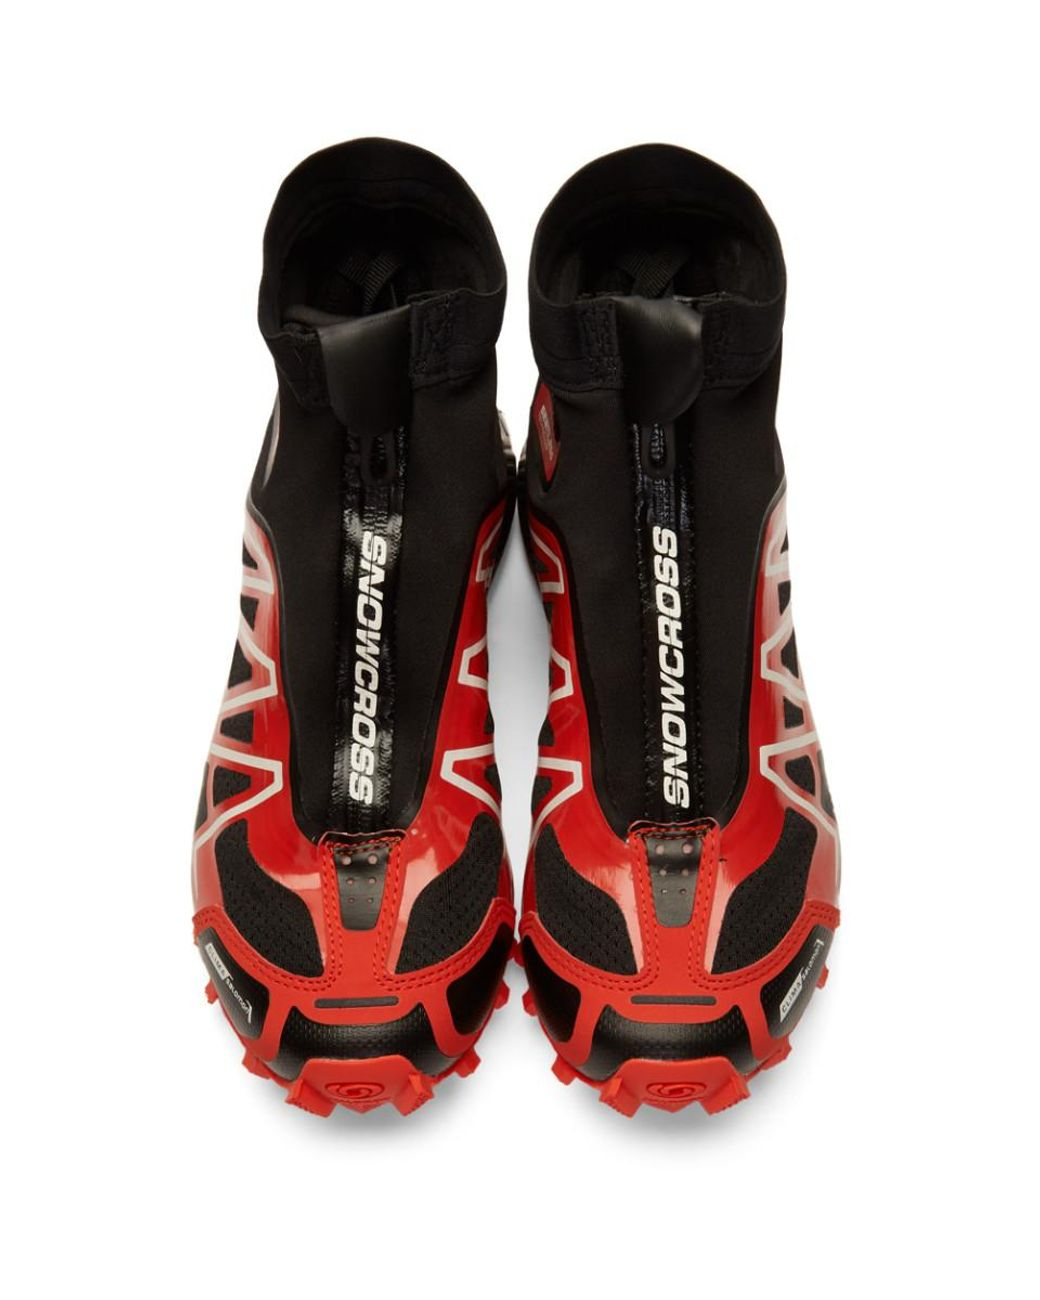 Black and Red Limited Edition Snowcross ADV LTD Sneakers